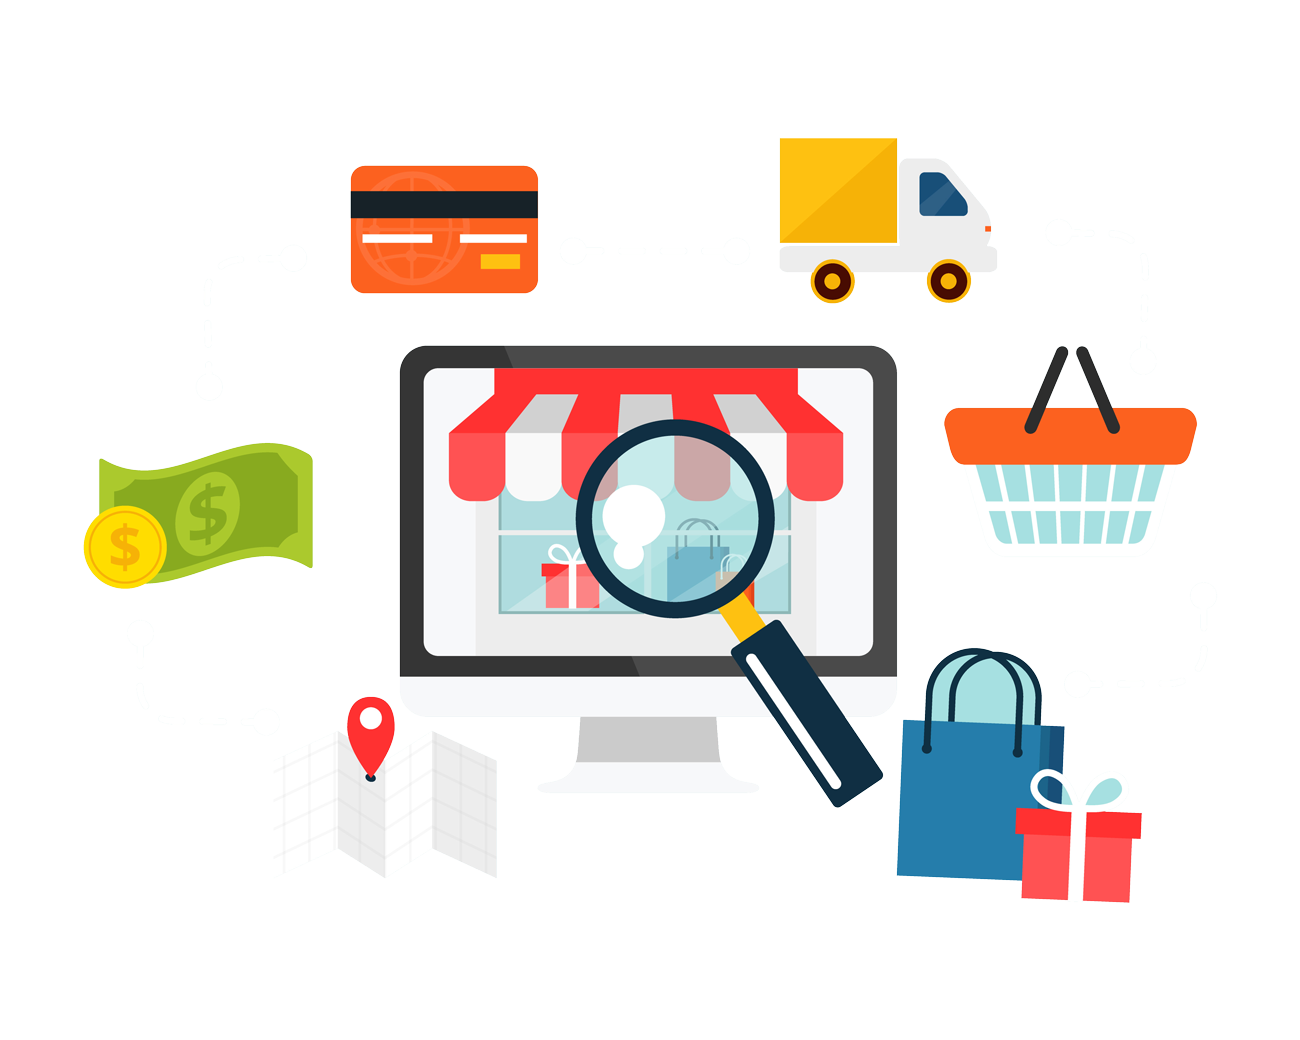 How to Create an eCommerce Website?